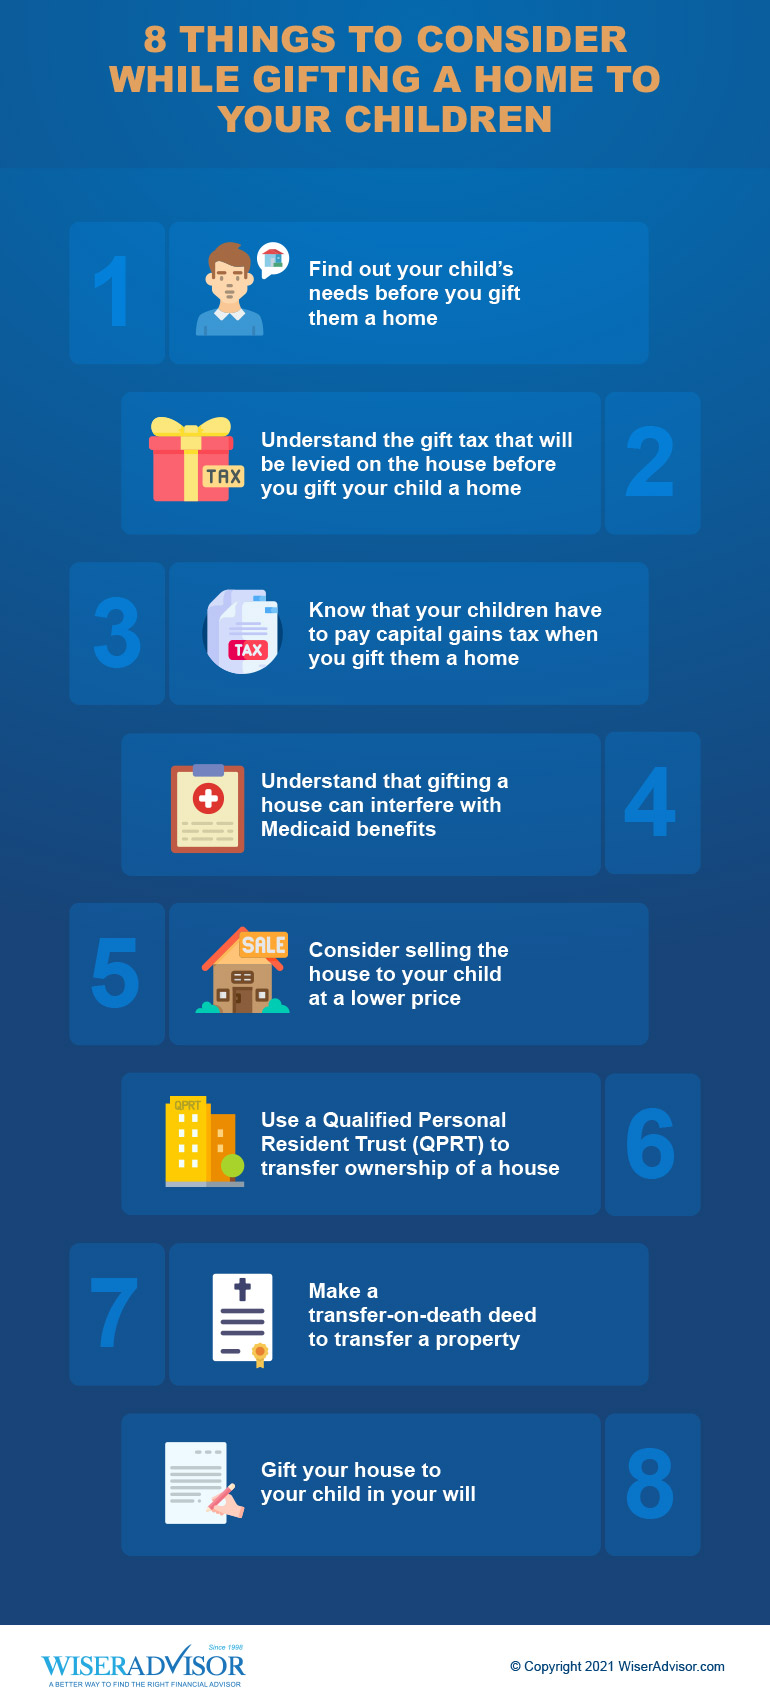 8 Things to Consider While Gifting A Home to Your Children